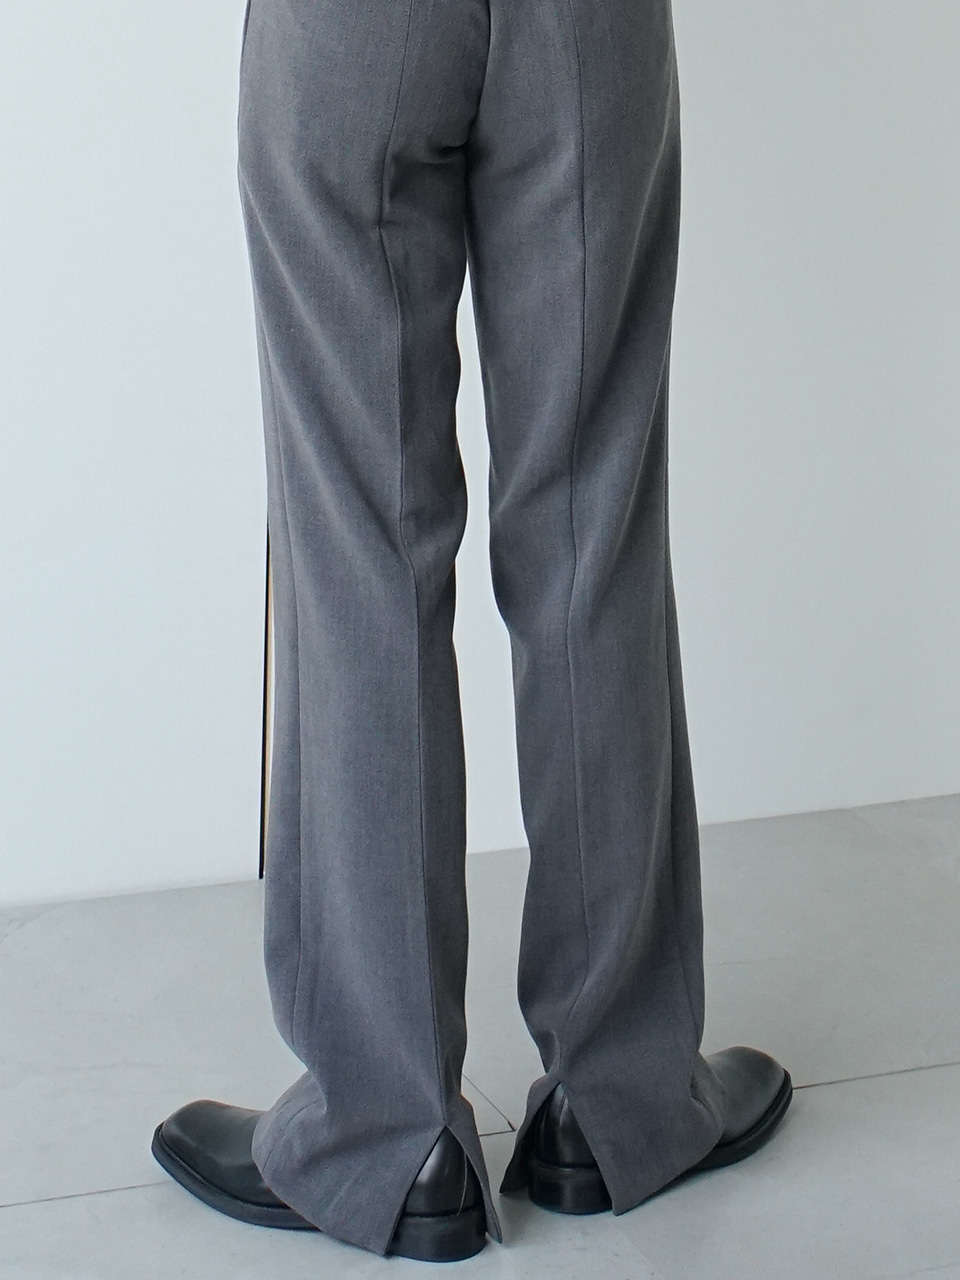 Post Back Vent Trousers (3color)